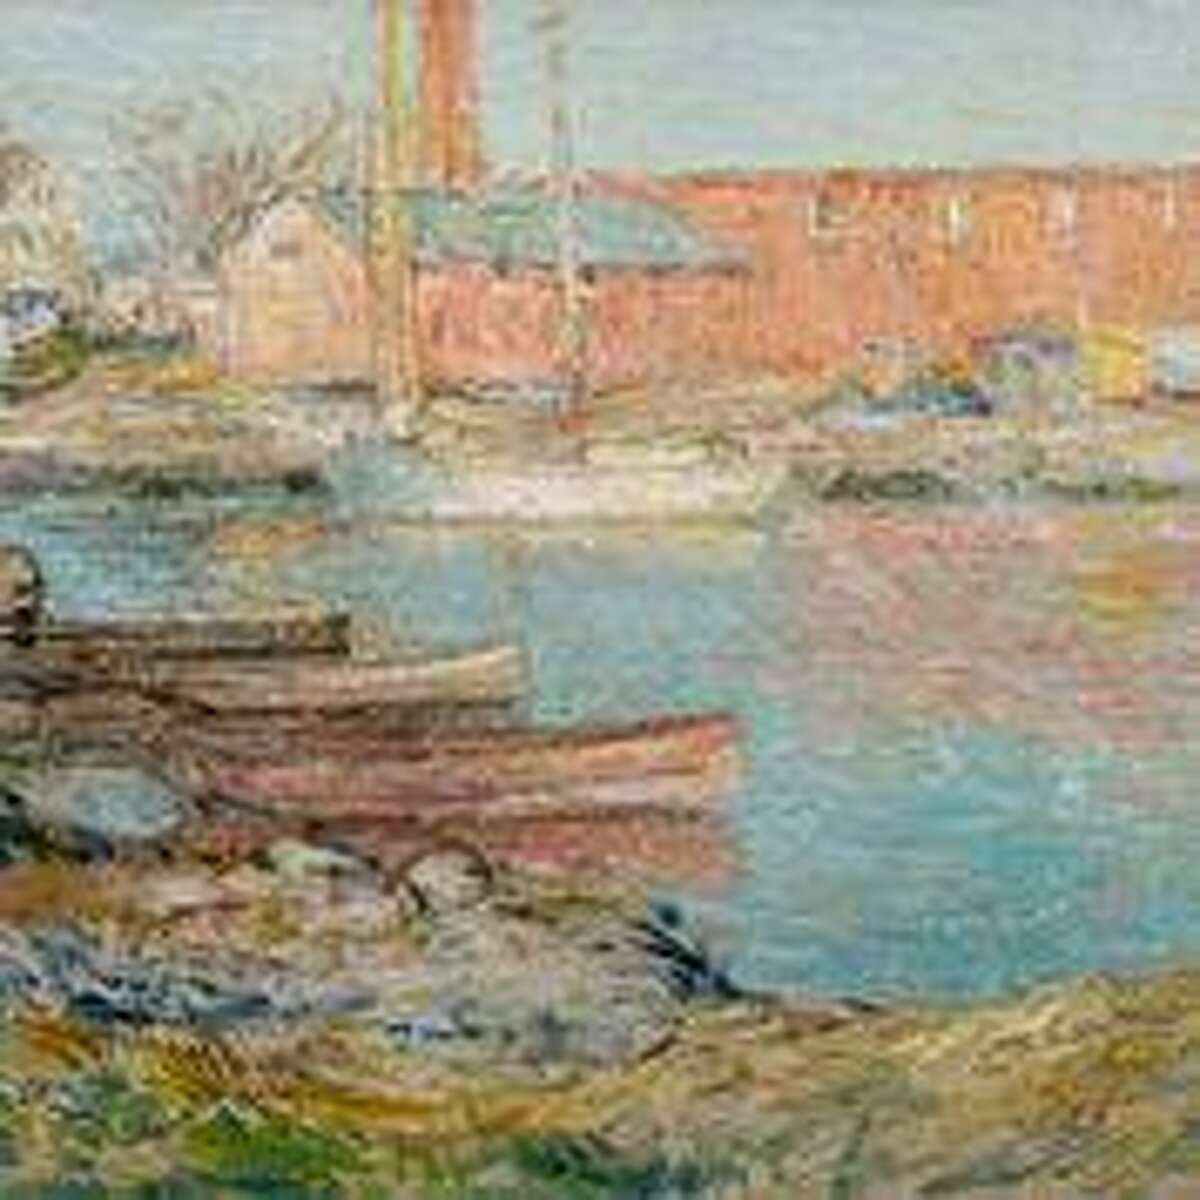 Childe Hassam's 'The Red Mill, Cos Cob,' an 1896 oil on canvas, will be the centerpiece of a new exhibit at the Greenwich Historical Society.